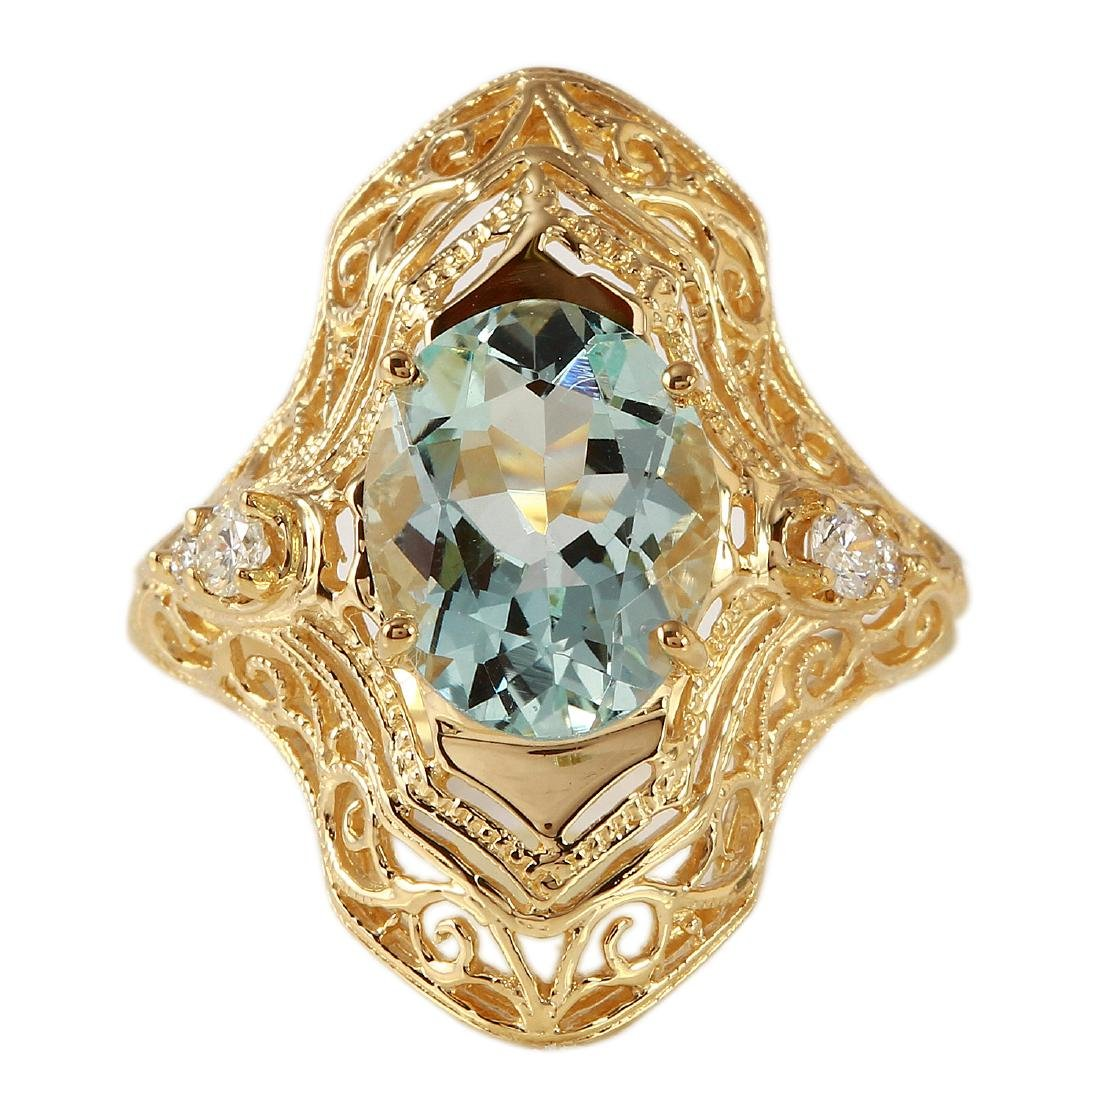 2.08 Carat Natural Aquamarine 18K Solid Yellow Gold